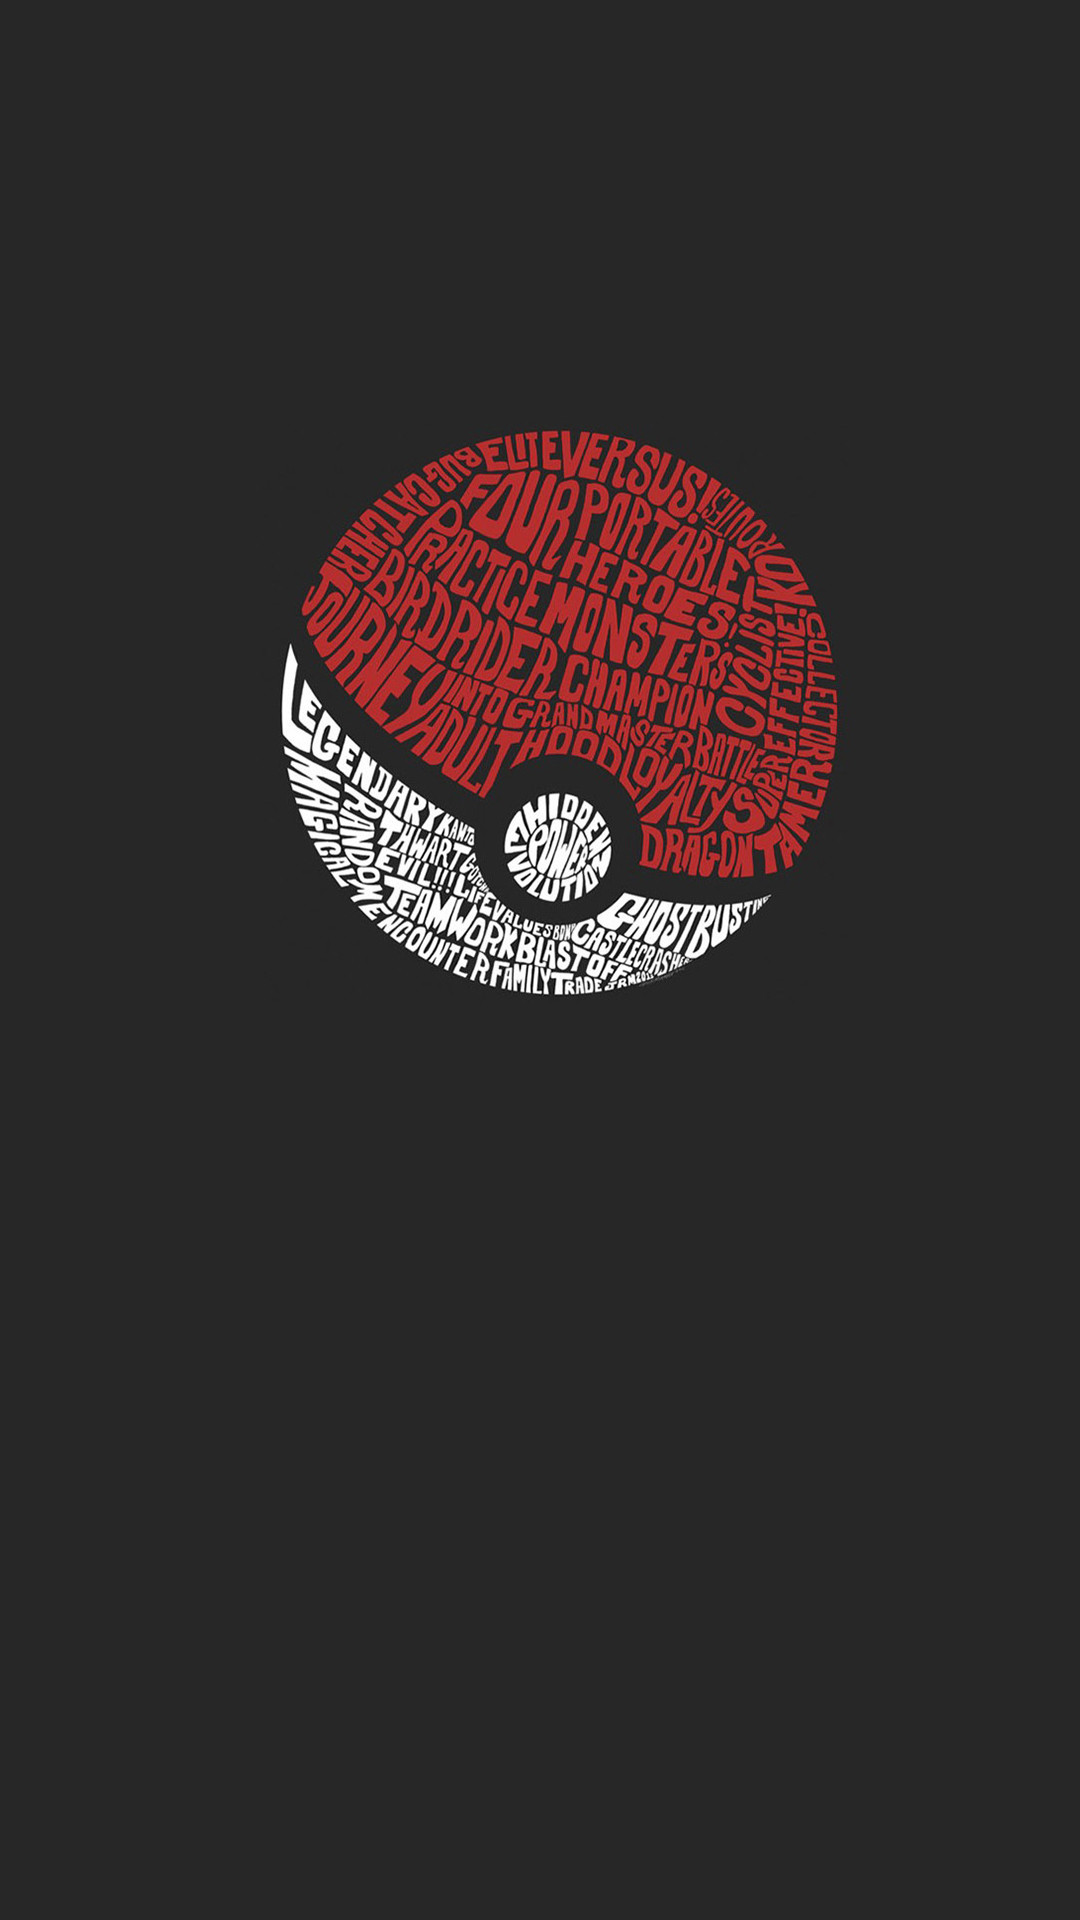 Minimal walls for pokemon fans. Collected and edited by me. Share and enjoy  ;)